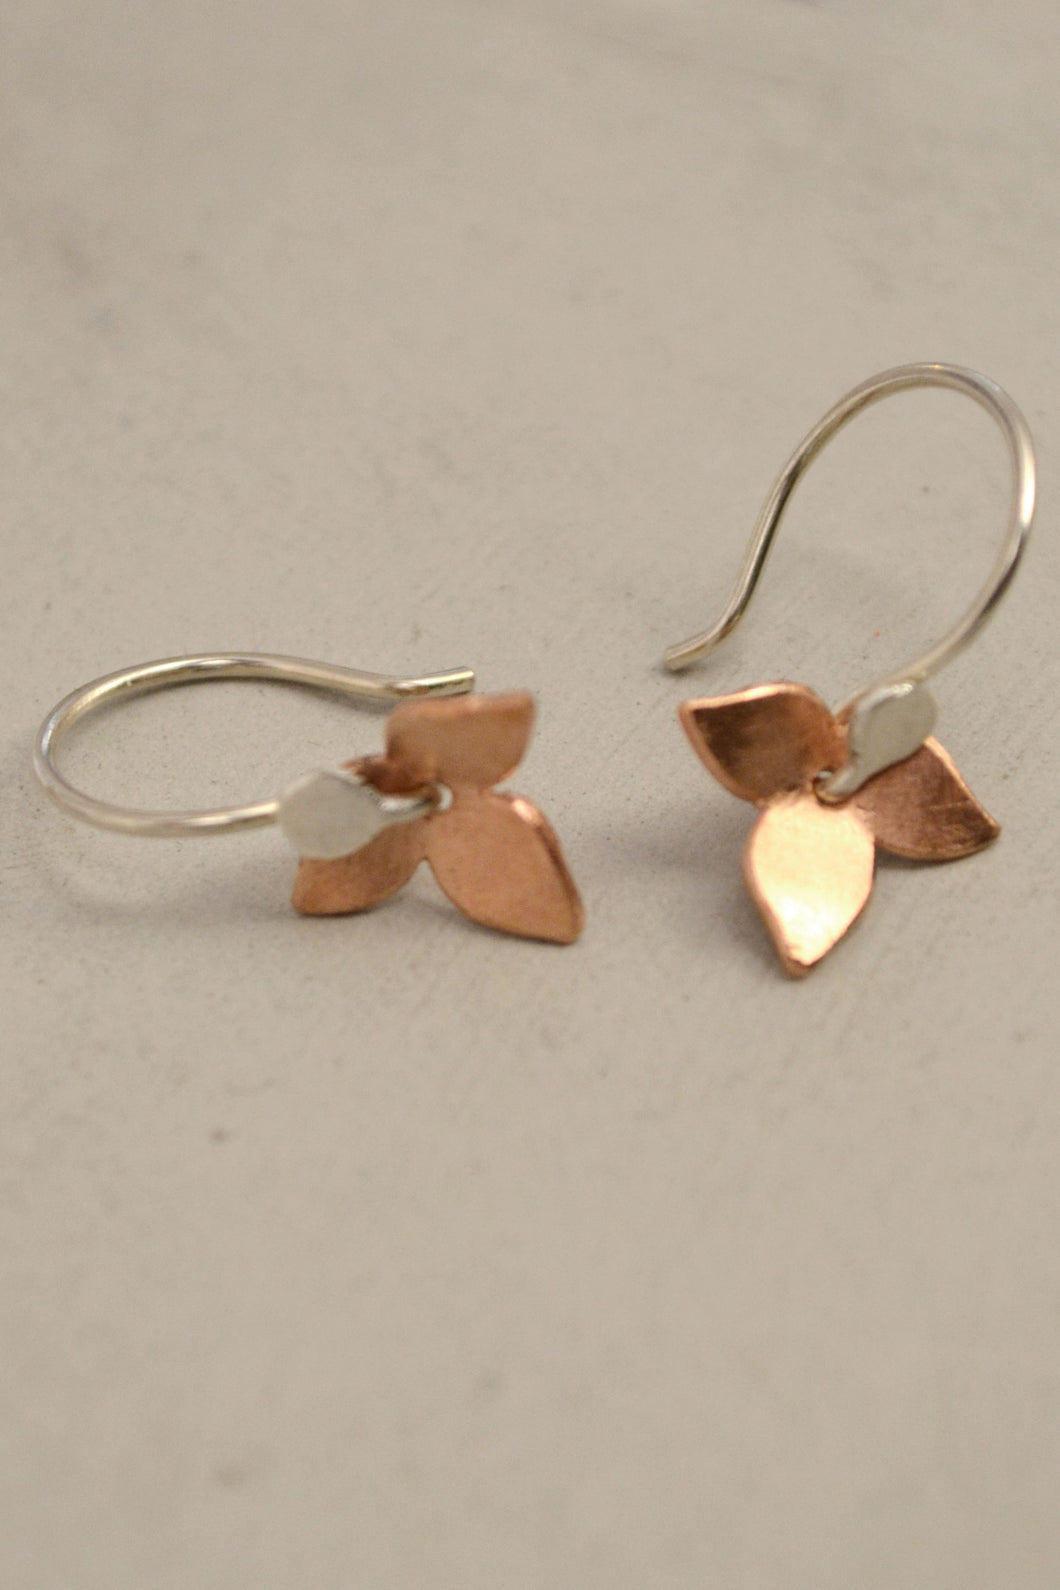 Floral Earrings Copper and Silver by Carolina Lutz S